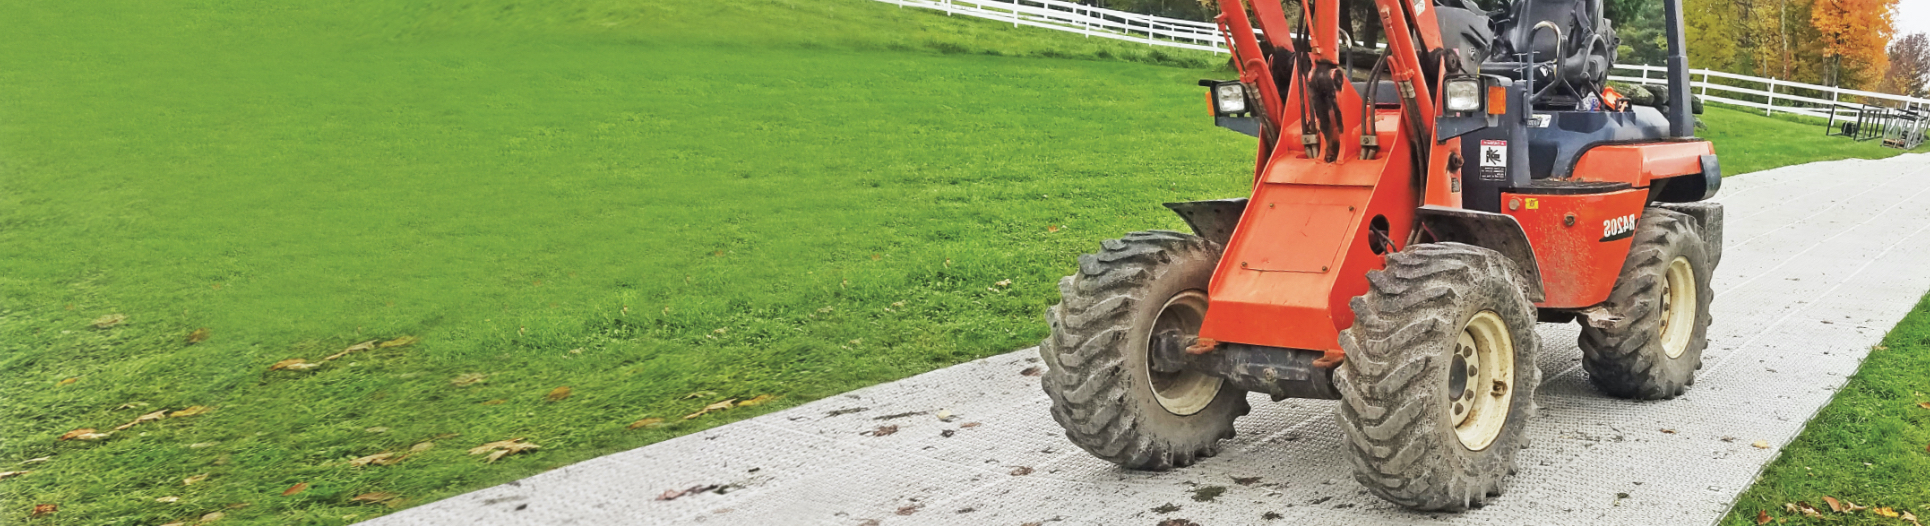 Tractor on Workhorse Panels